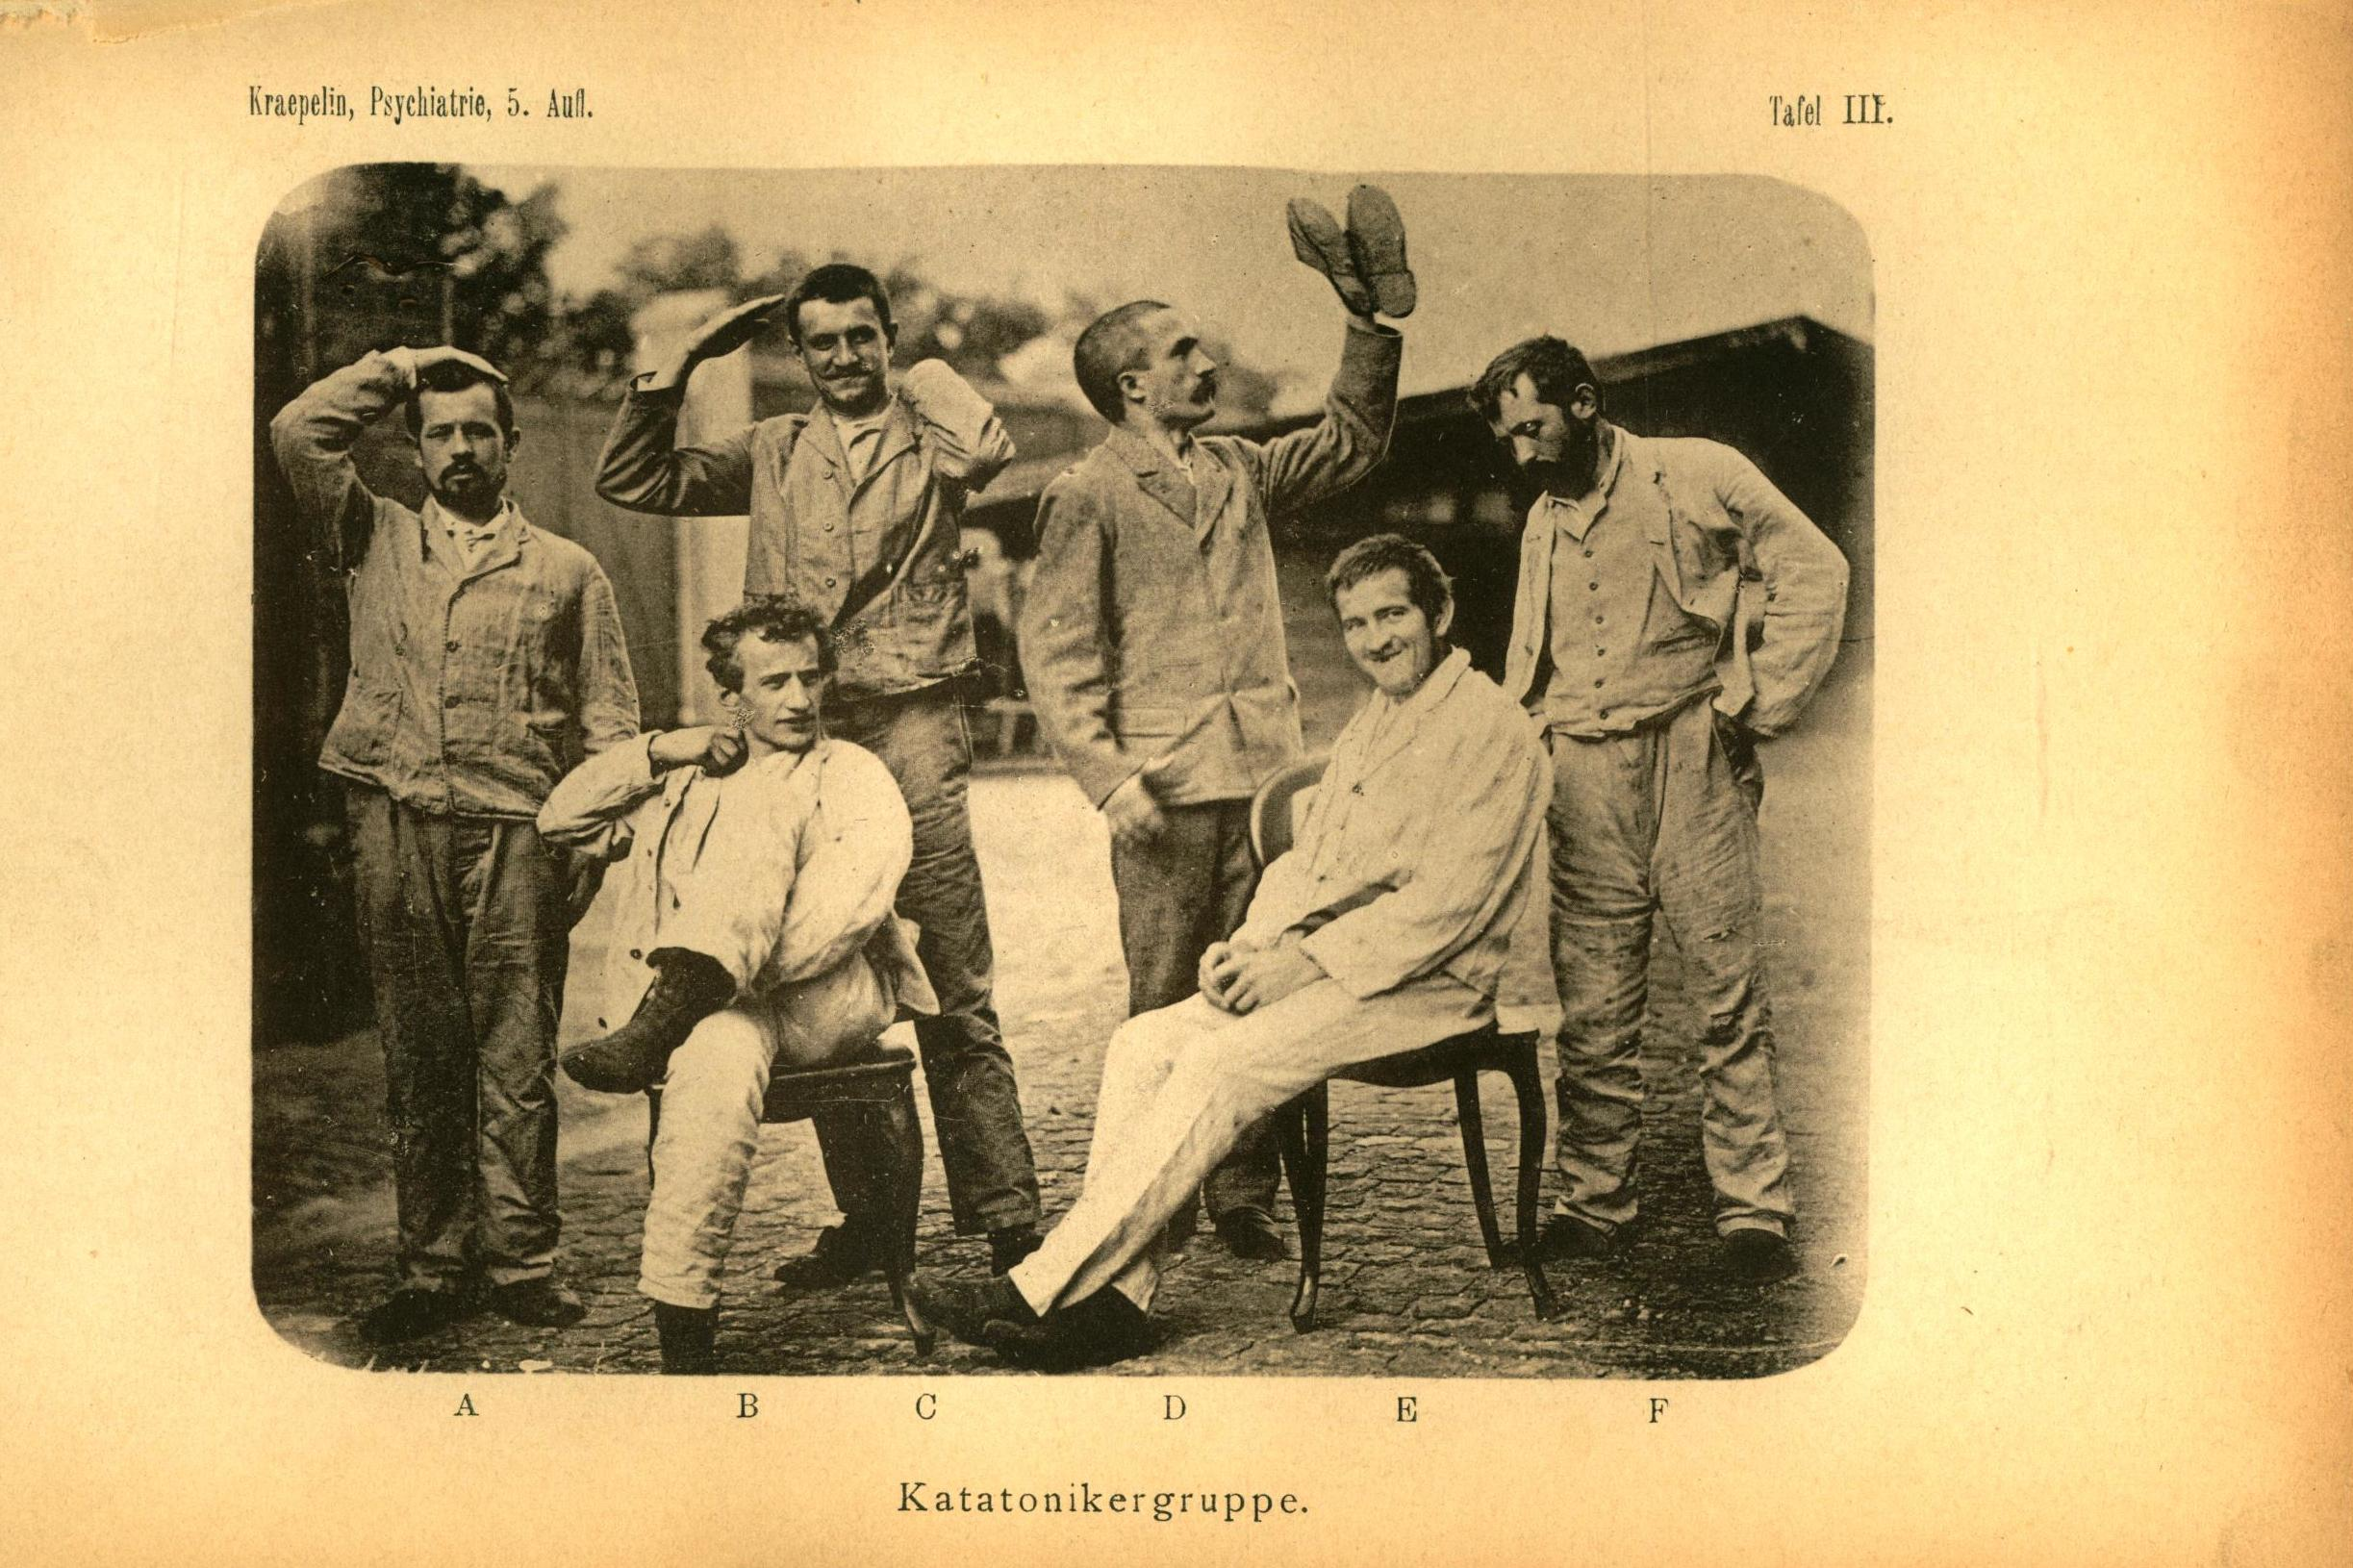 Photograph taken from German psychiatrist Emil Kraepelin¿s textbook of psychiatry (1896)